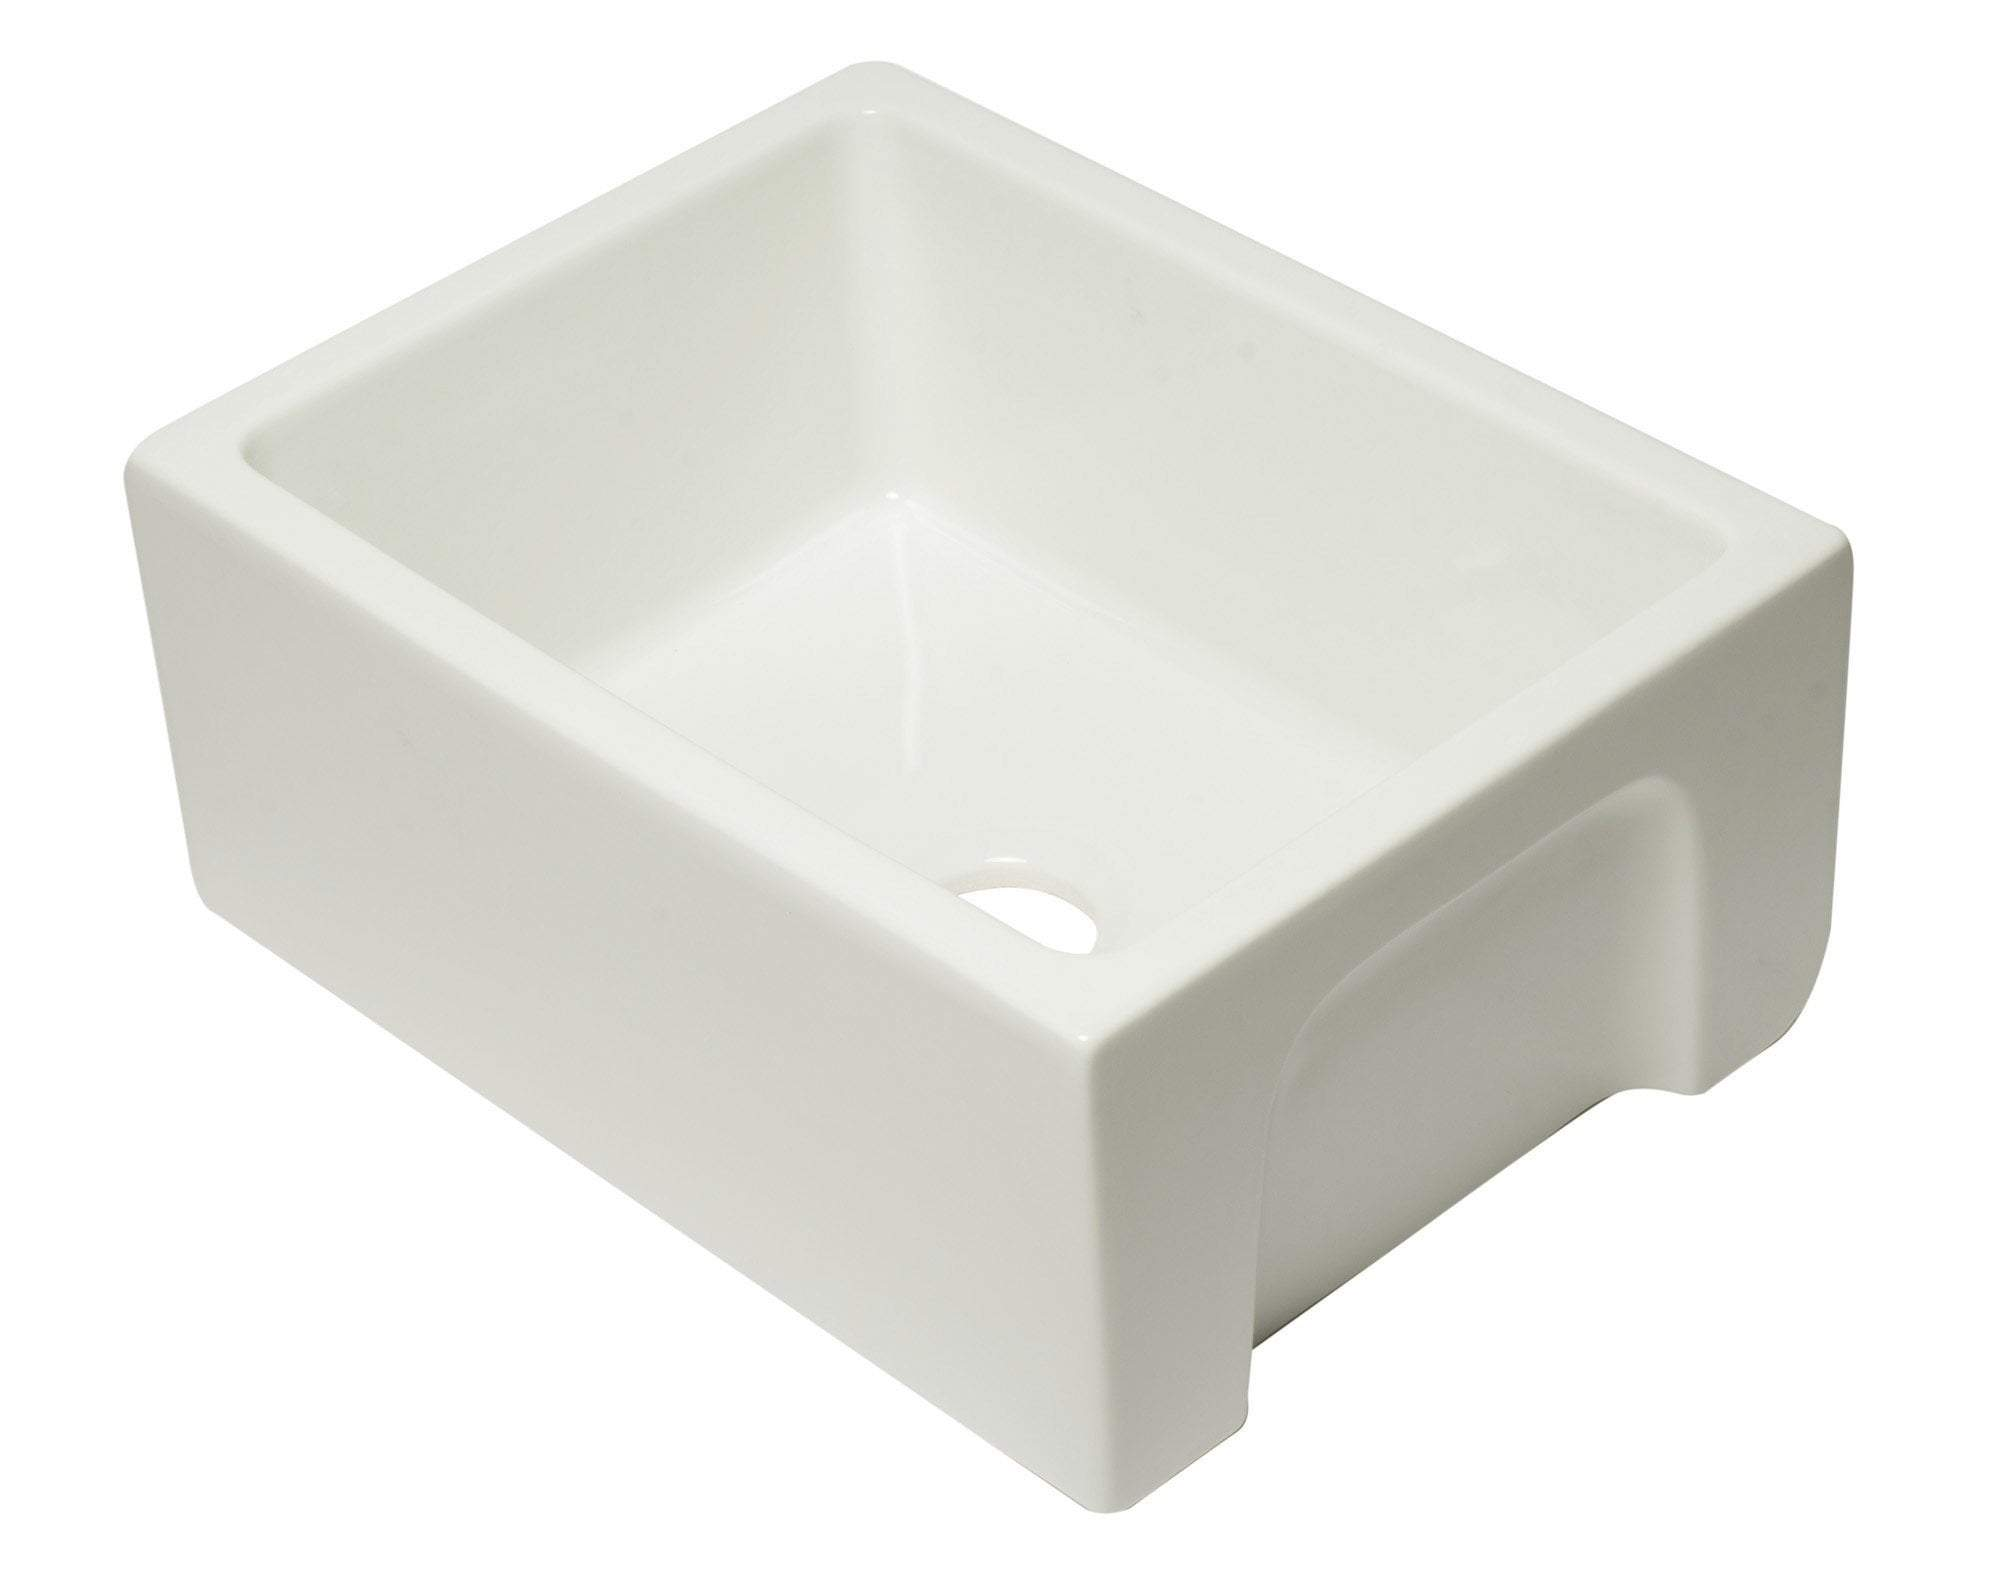 24 inch Biscuit Reversible Smooth / Fluted Single Bowl Fireclay Farm Sink